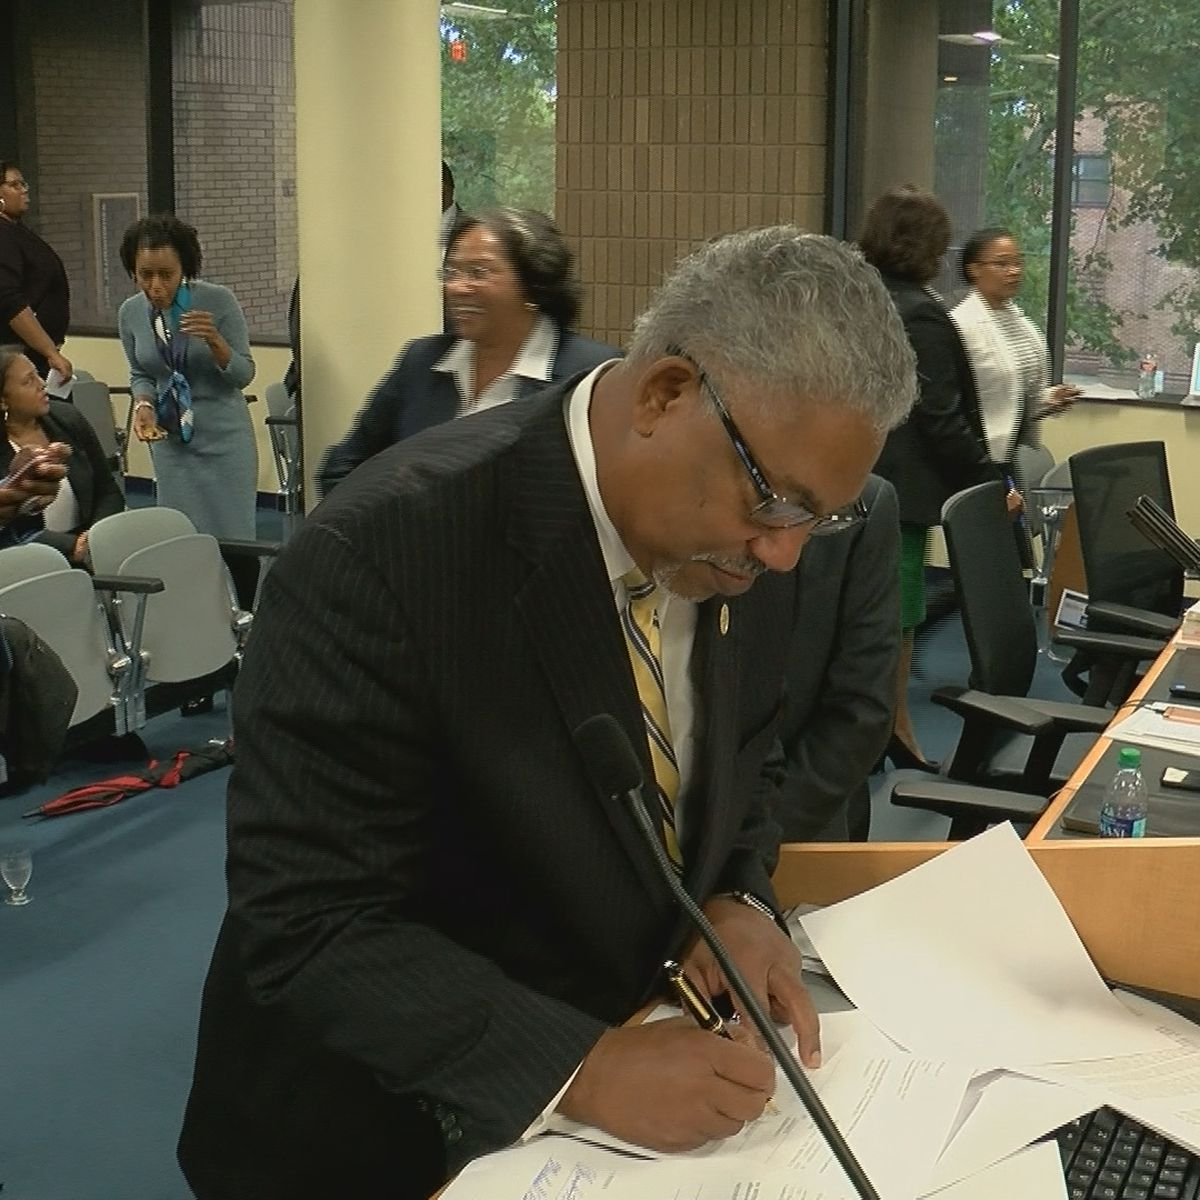 Southern University inks new deal, rolls on with medical marijuana operation